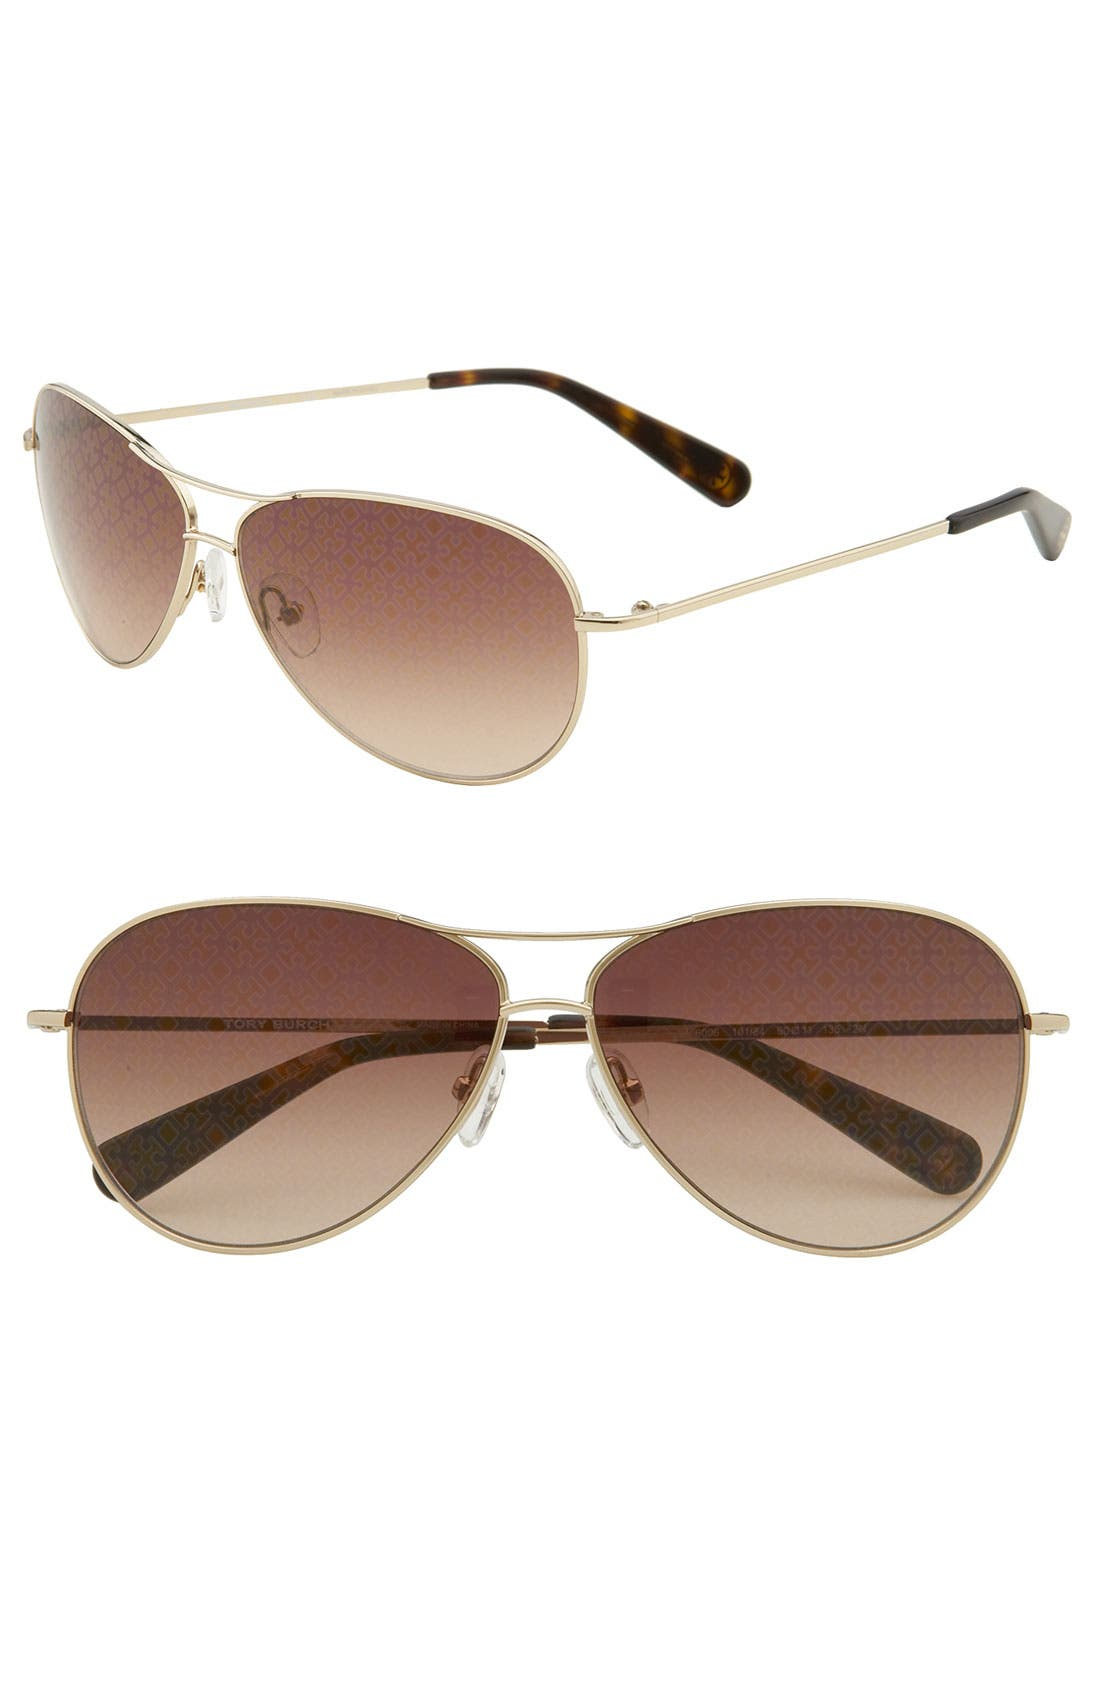 Main Image - Tory Burch 60mm Metal Aviator Sunglasses